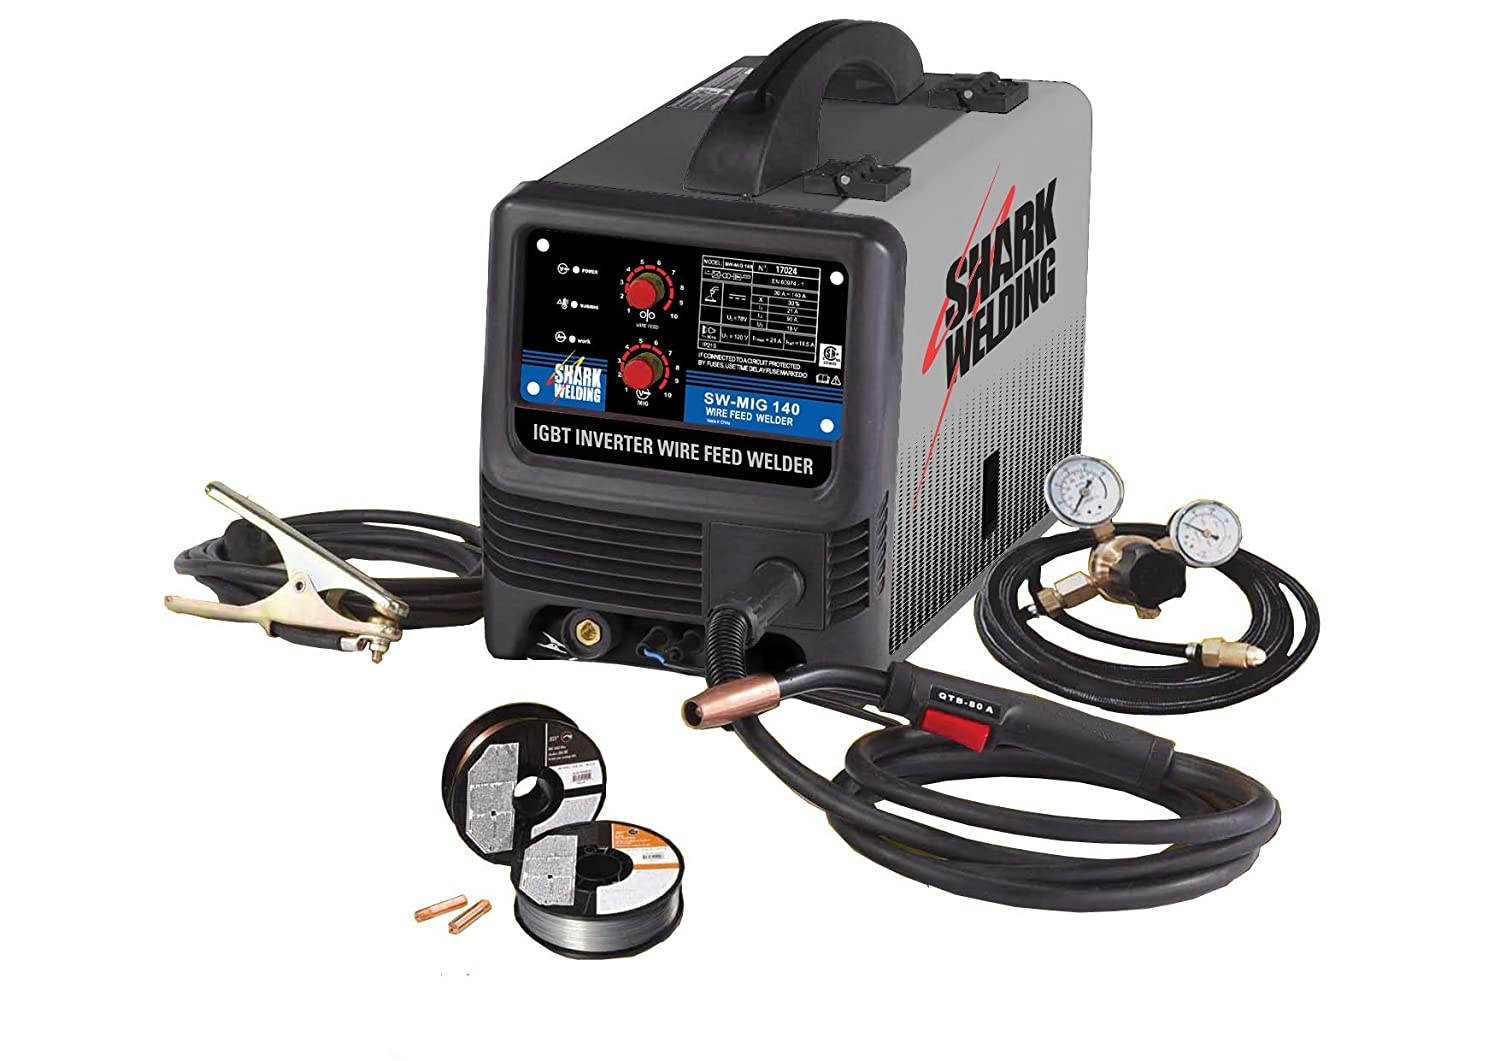 Shark Welding 17024 SW-MIG 140 Welder - Power Welders - Amazon.com